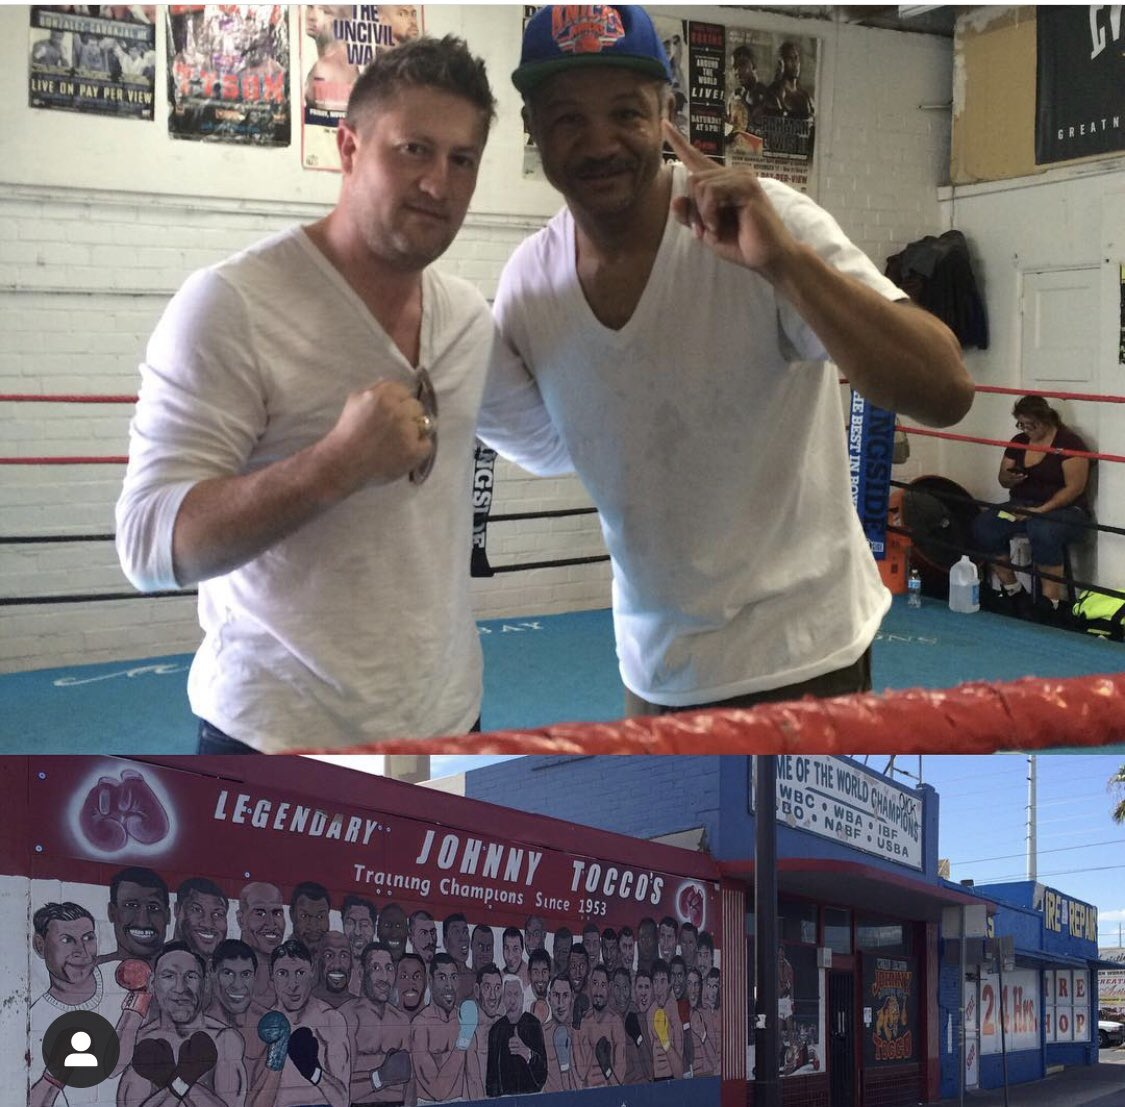 With Merqui Sosa at Johnny Tocco's gym in Vegas. #boxing #johnnytoccos #merquisosa #royjonesjr